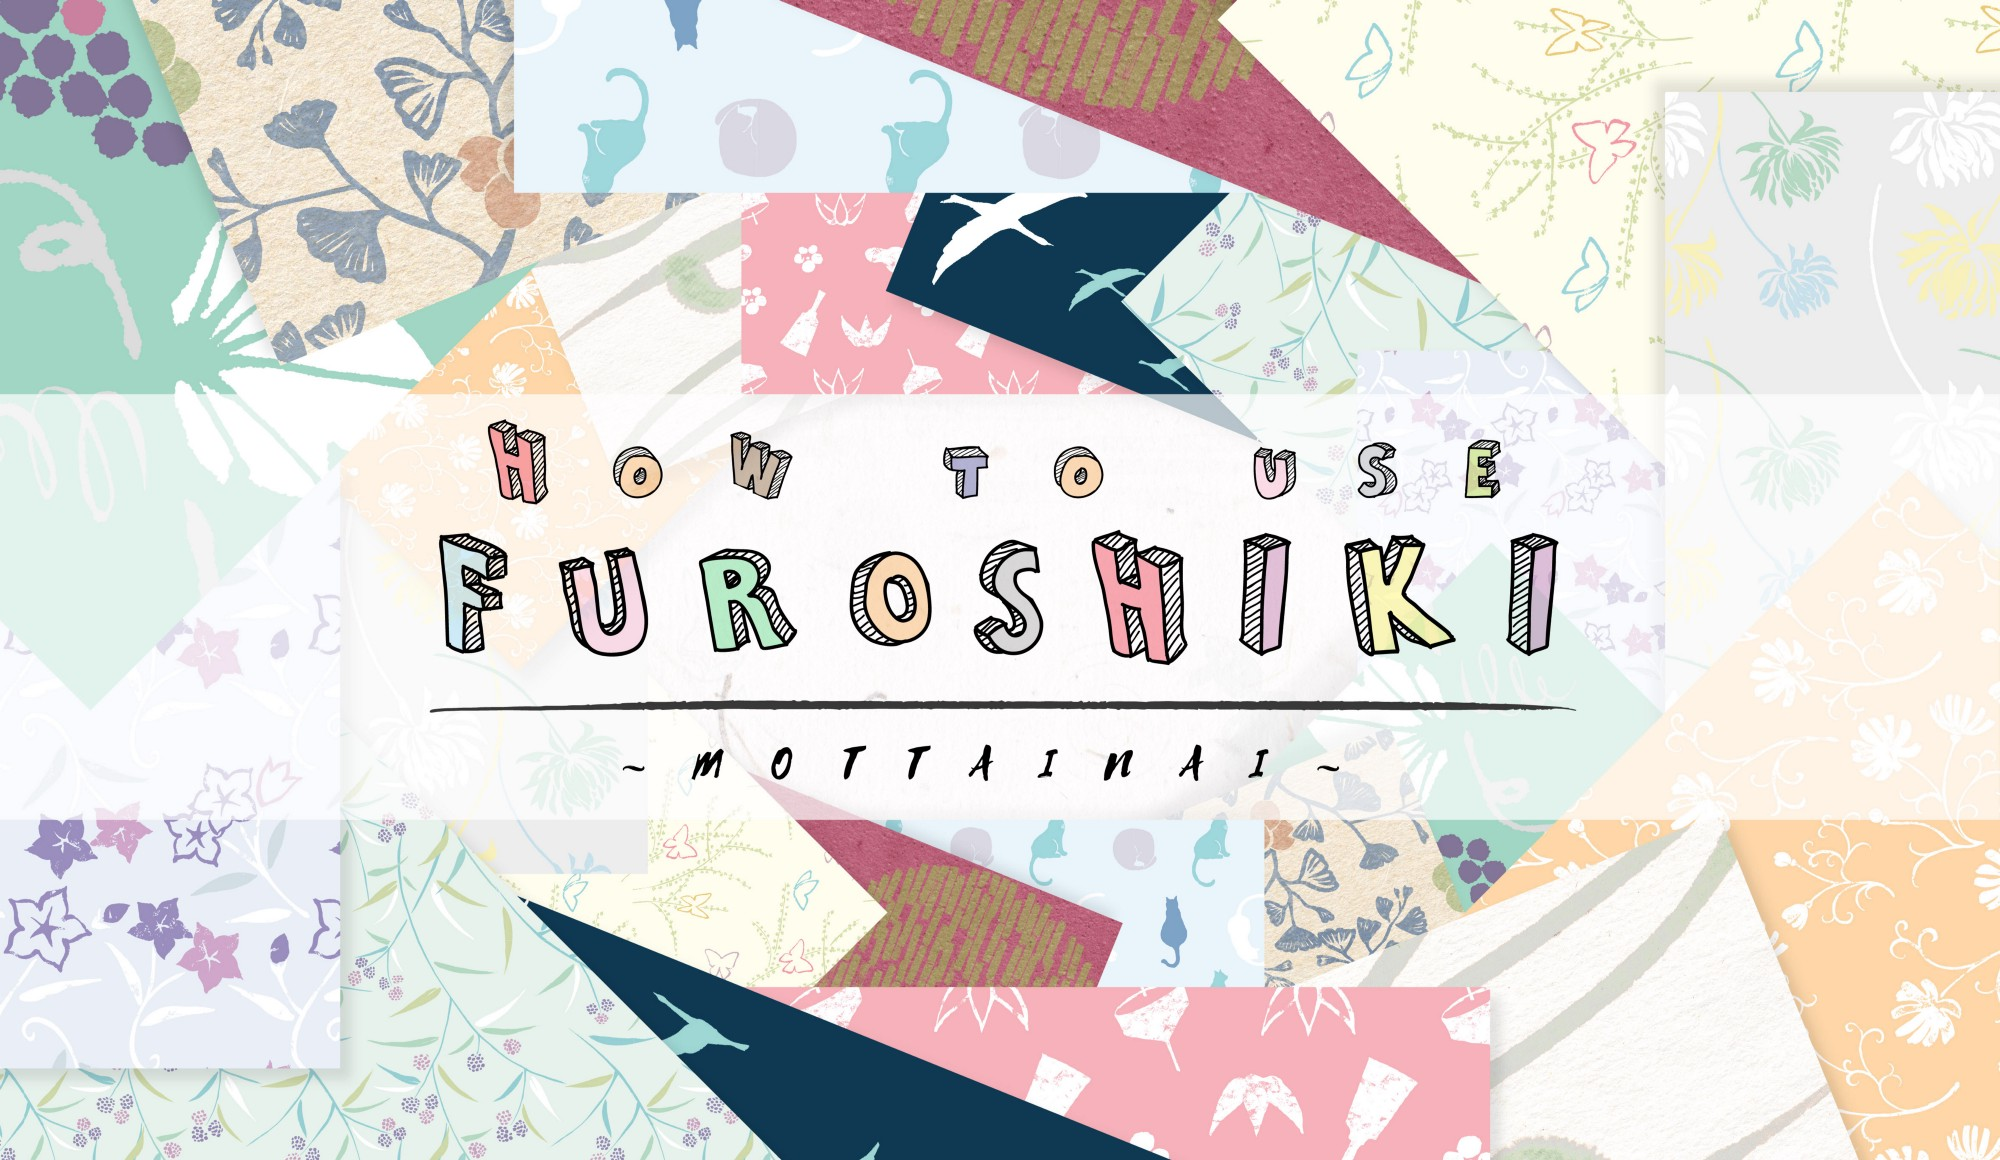 Furoshiki: a selection of articles